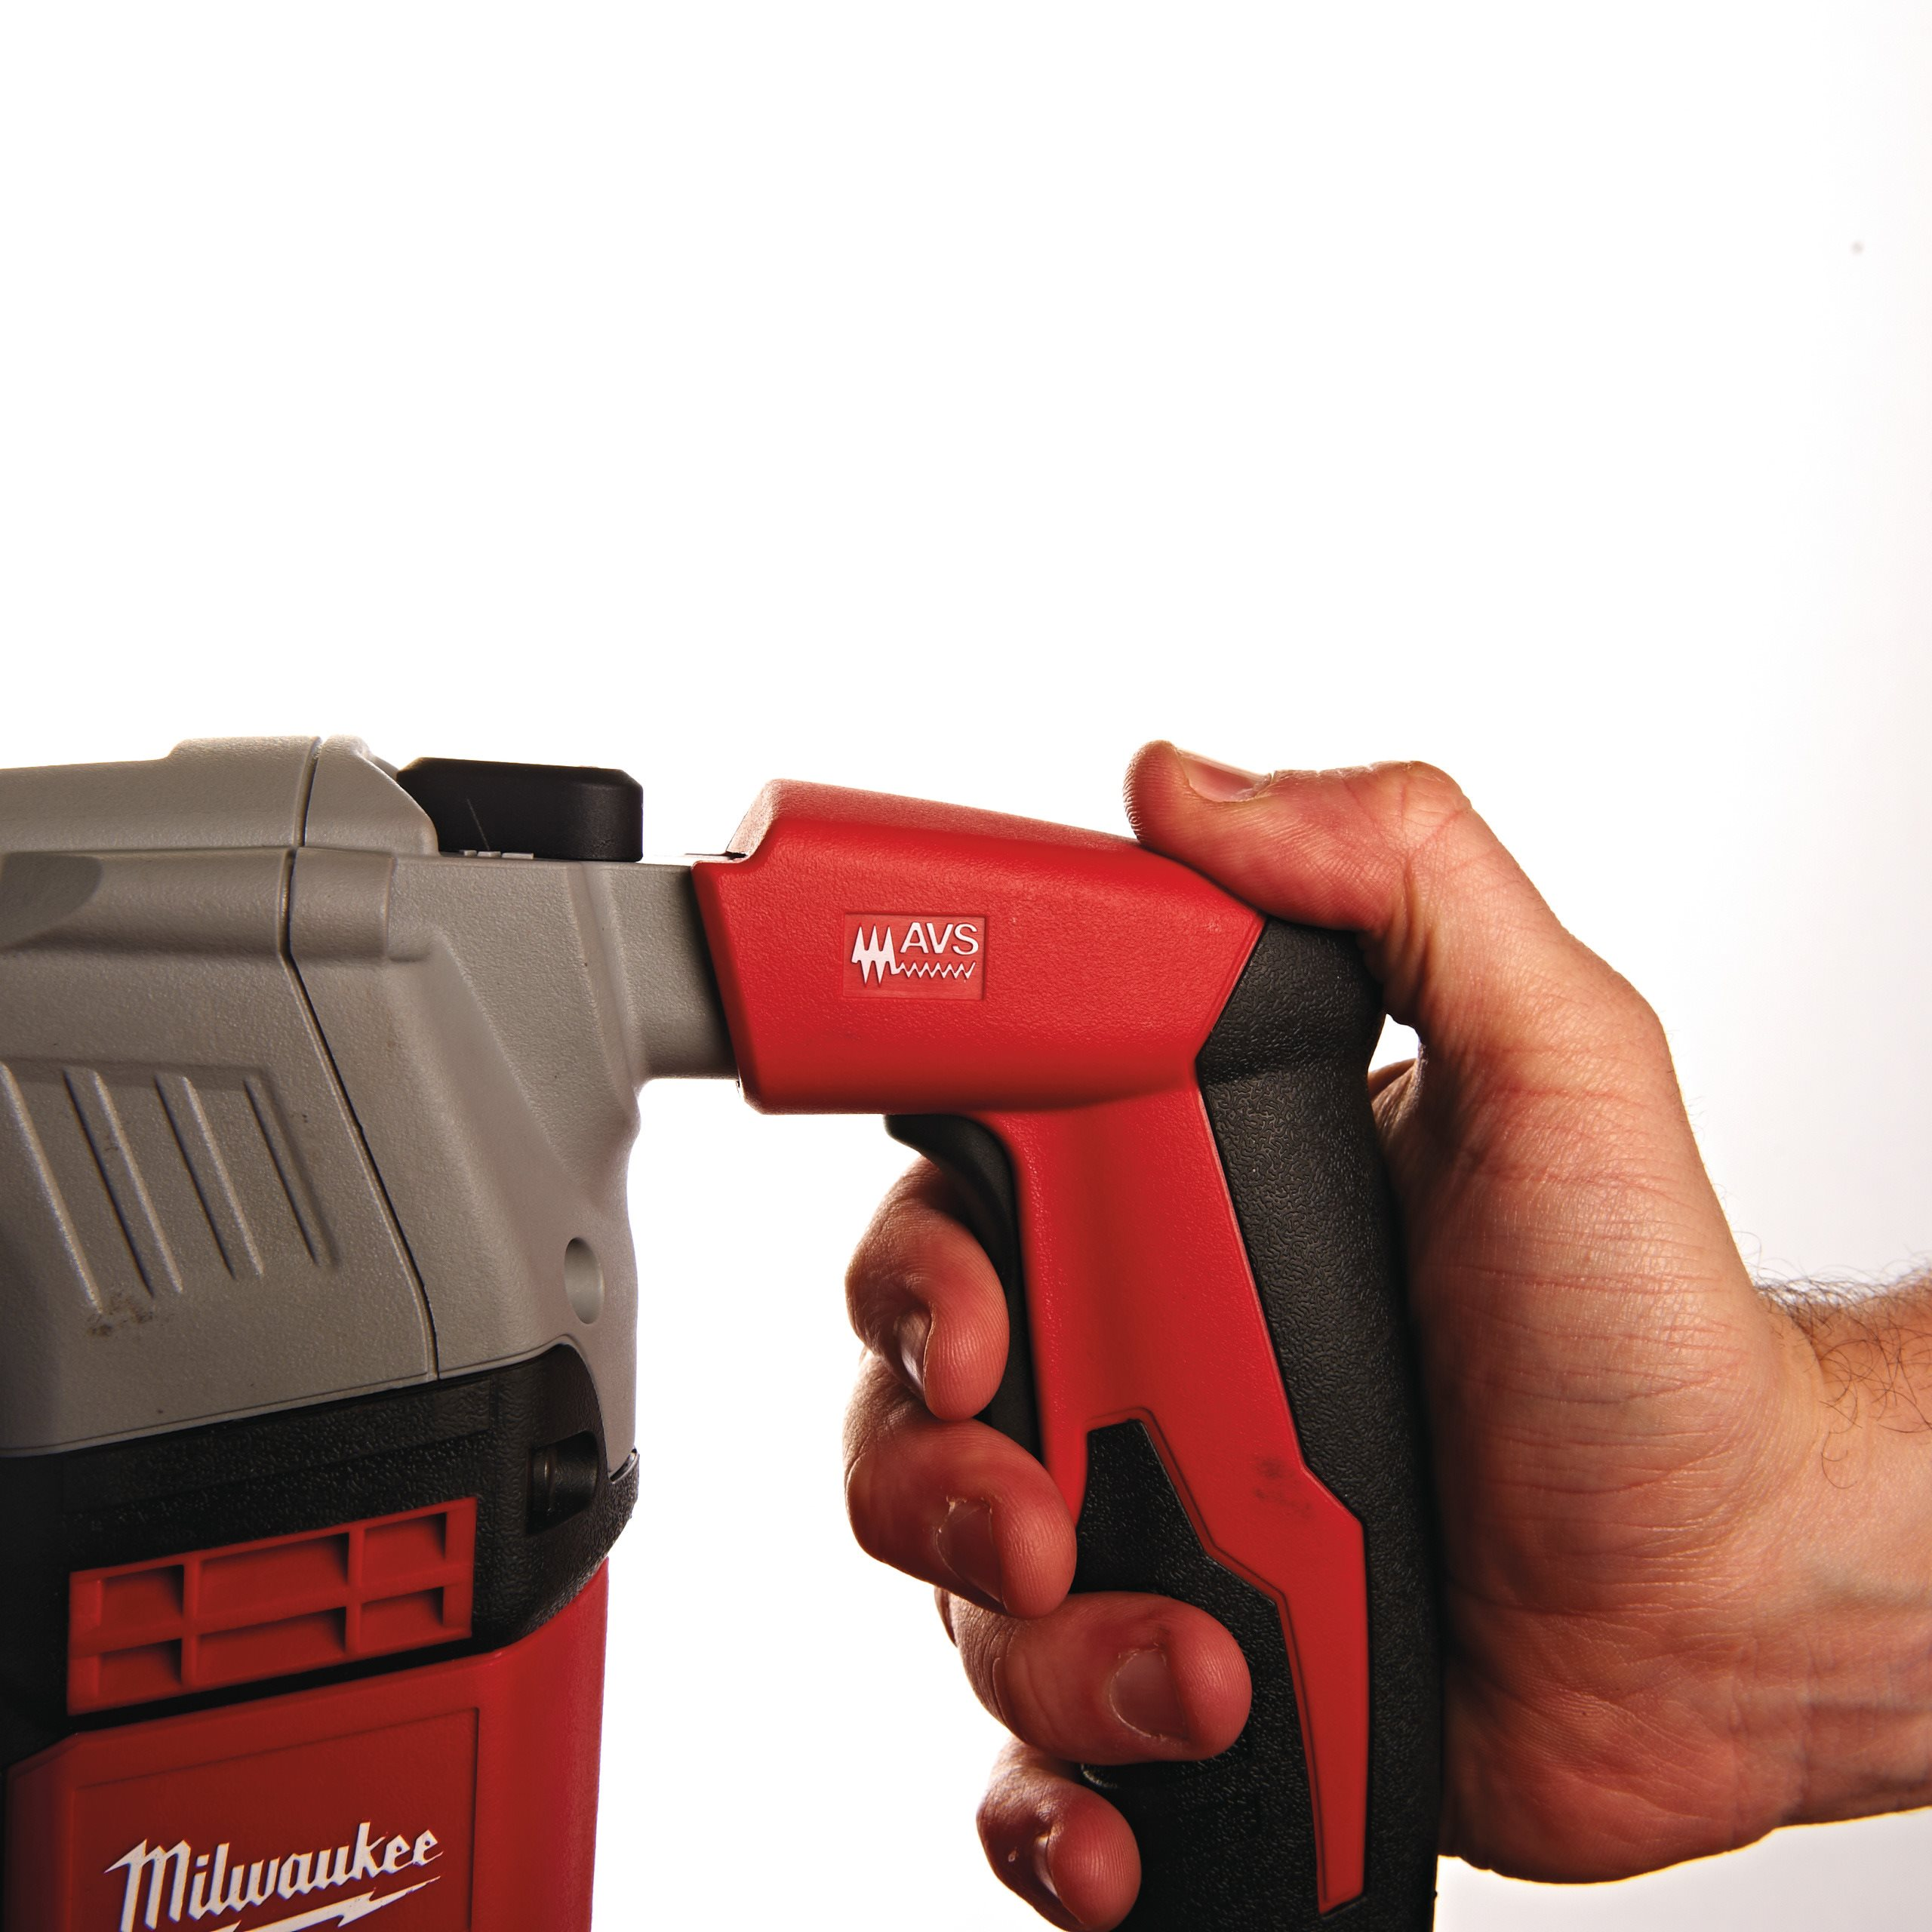 PLH 20 | Milwaukee Tools France